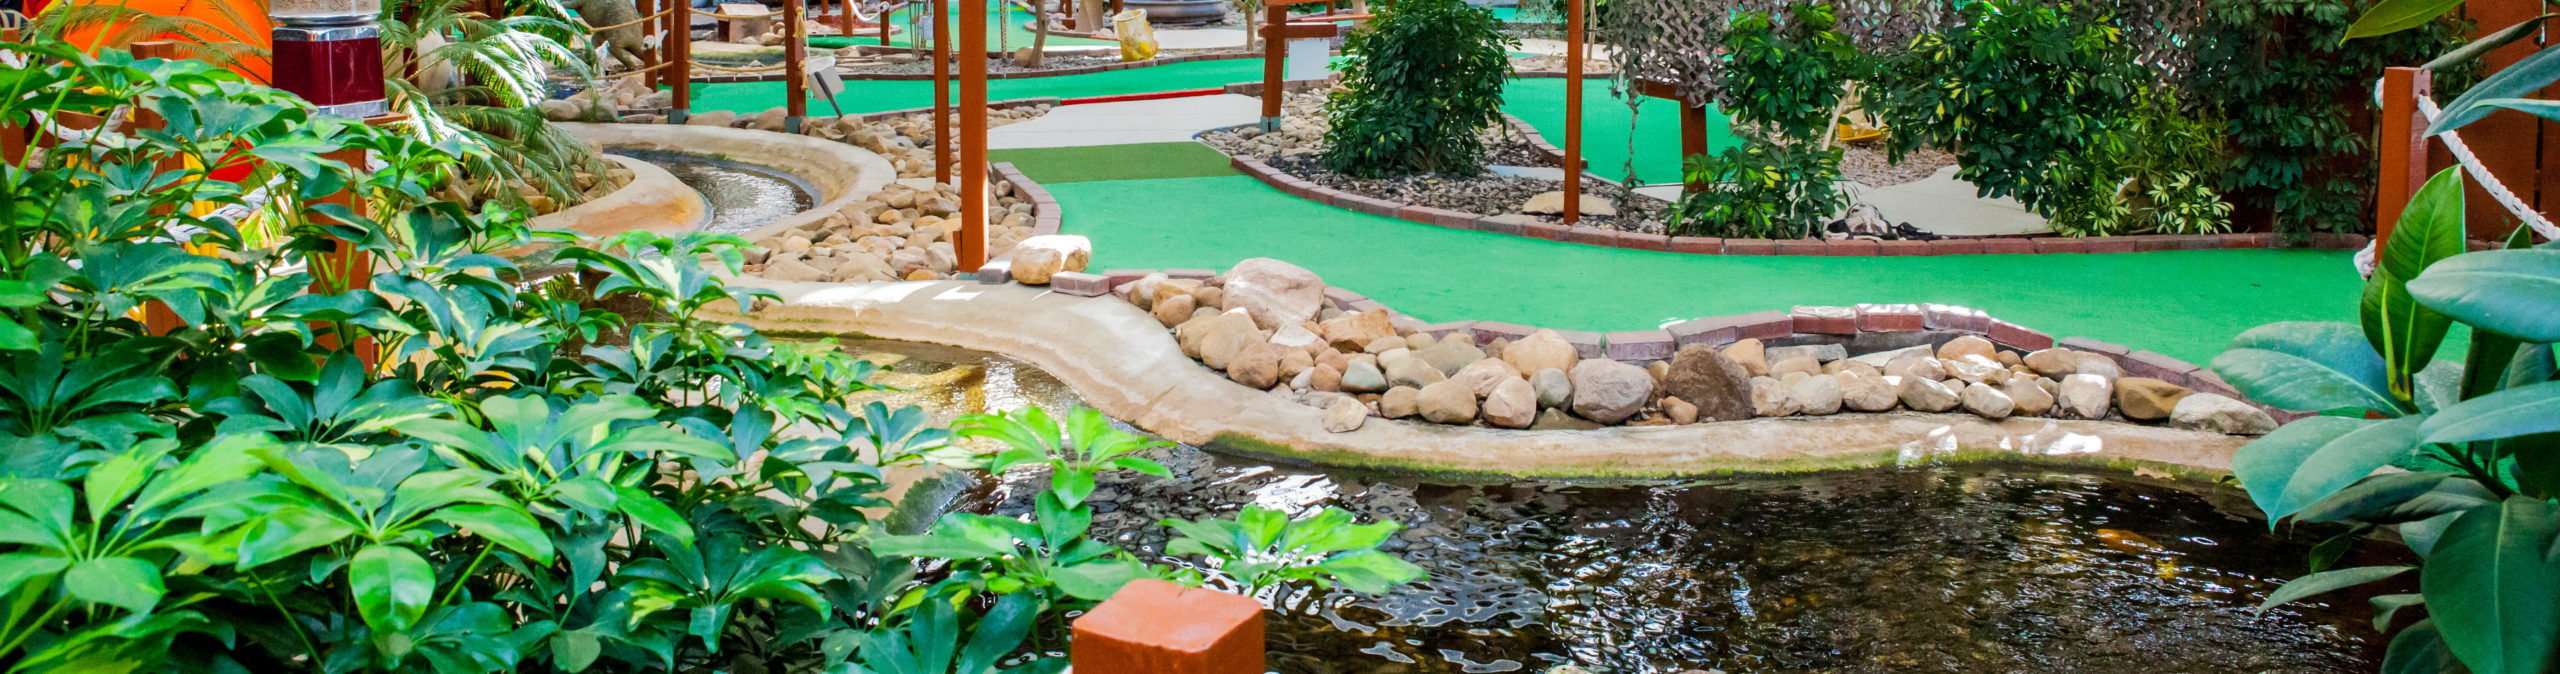 Colasanti's Indoor Mini Golf